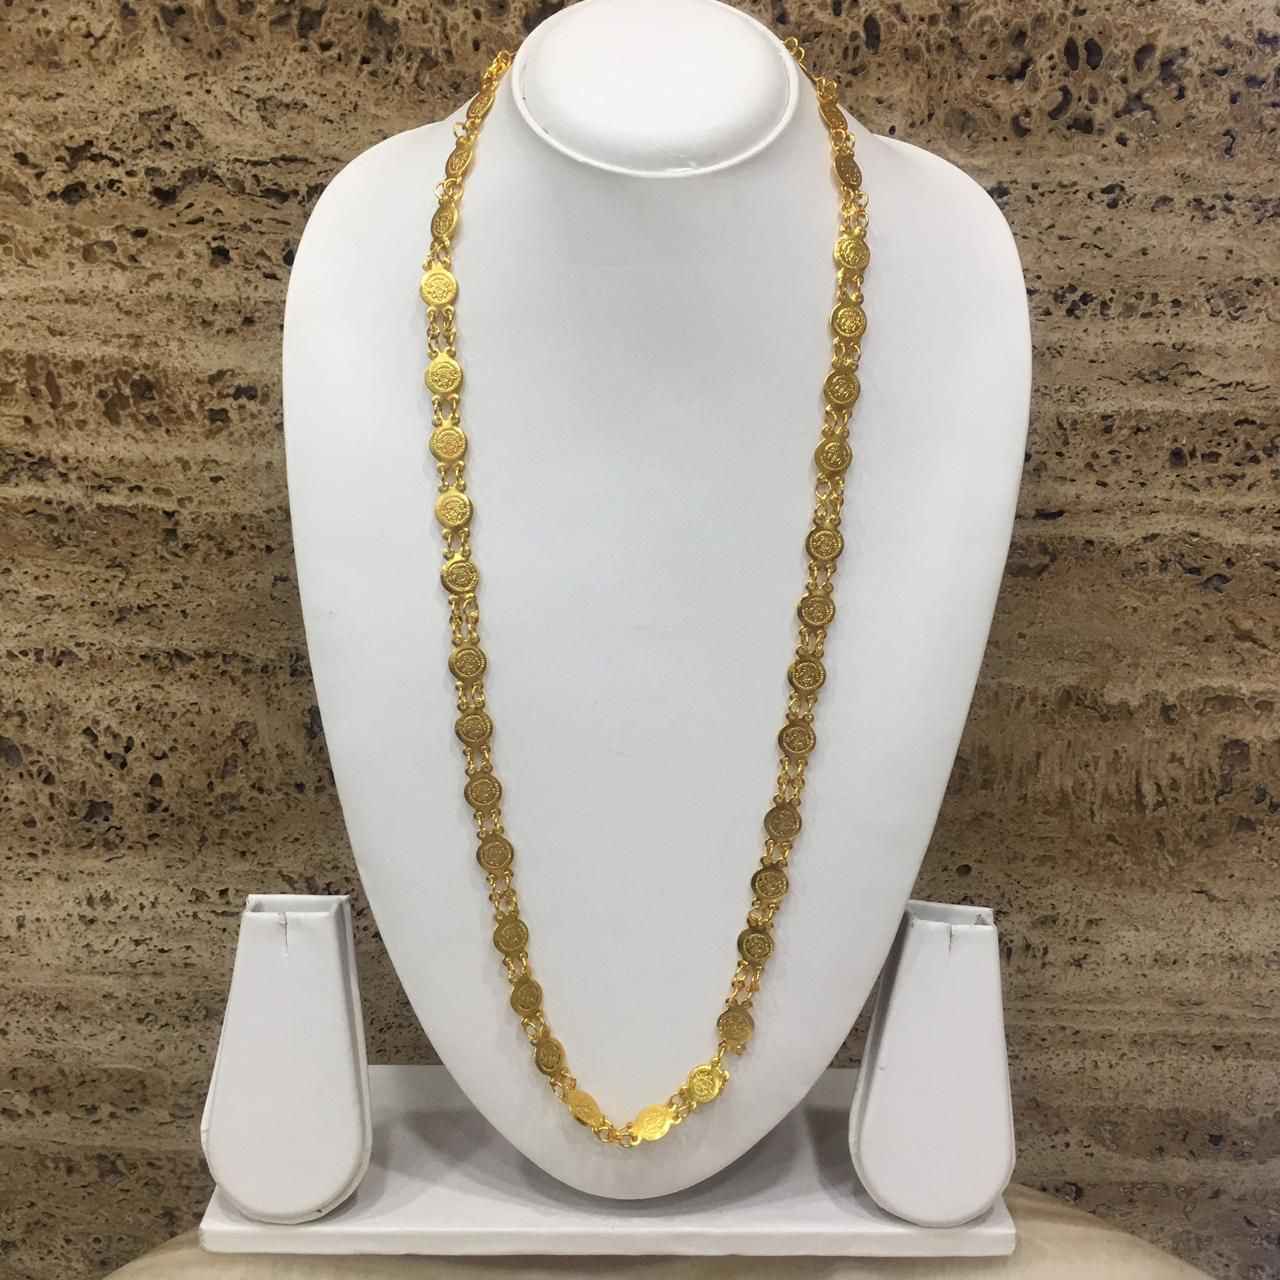 Digital Dress Women's Jewellery Gold Plated lakshmi coin Mangalsutra 30-inch Length Golden laxmi Coin pendant necklace Traditional Single Line Layer Long Mangalsutra For Women